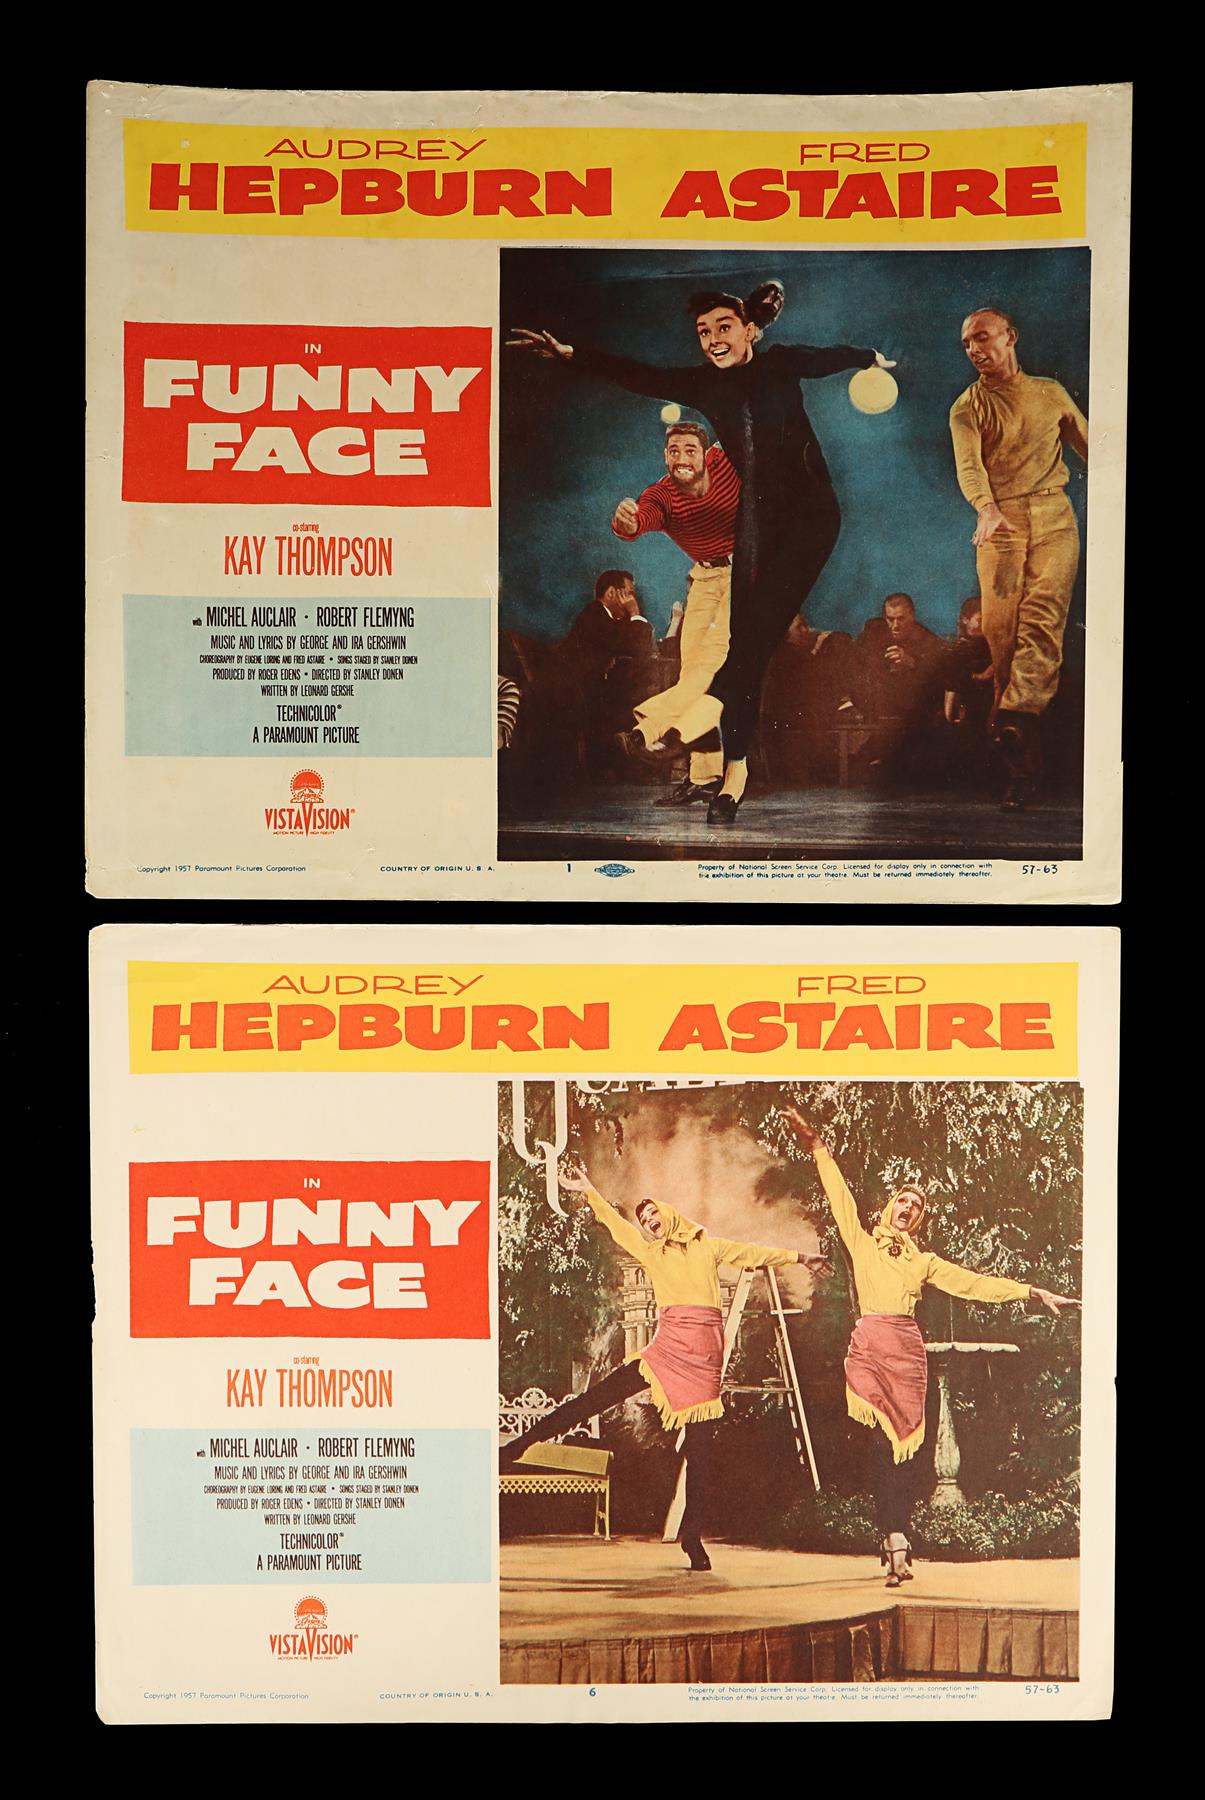 FUNNY FACE (1957) - Eight US Lobby Cards, 1957 - Image 3 of 5